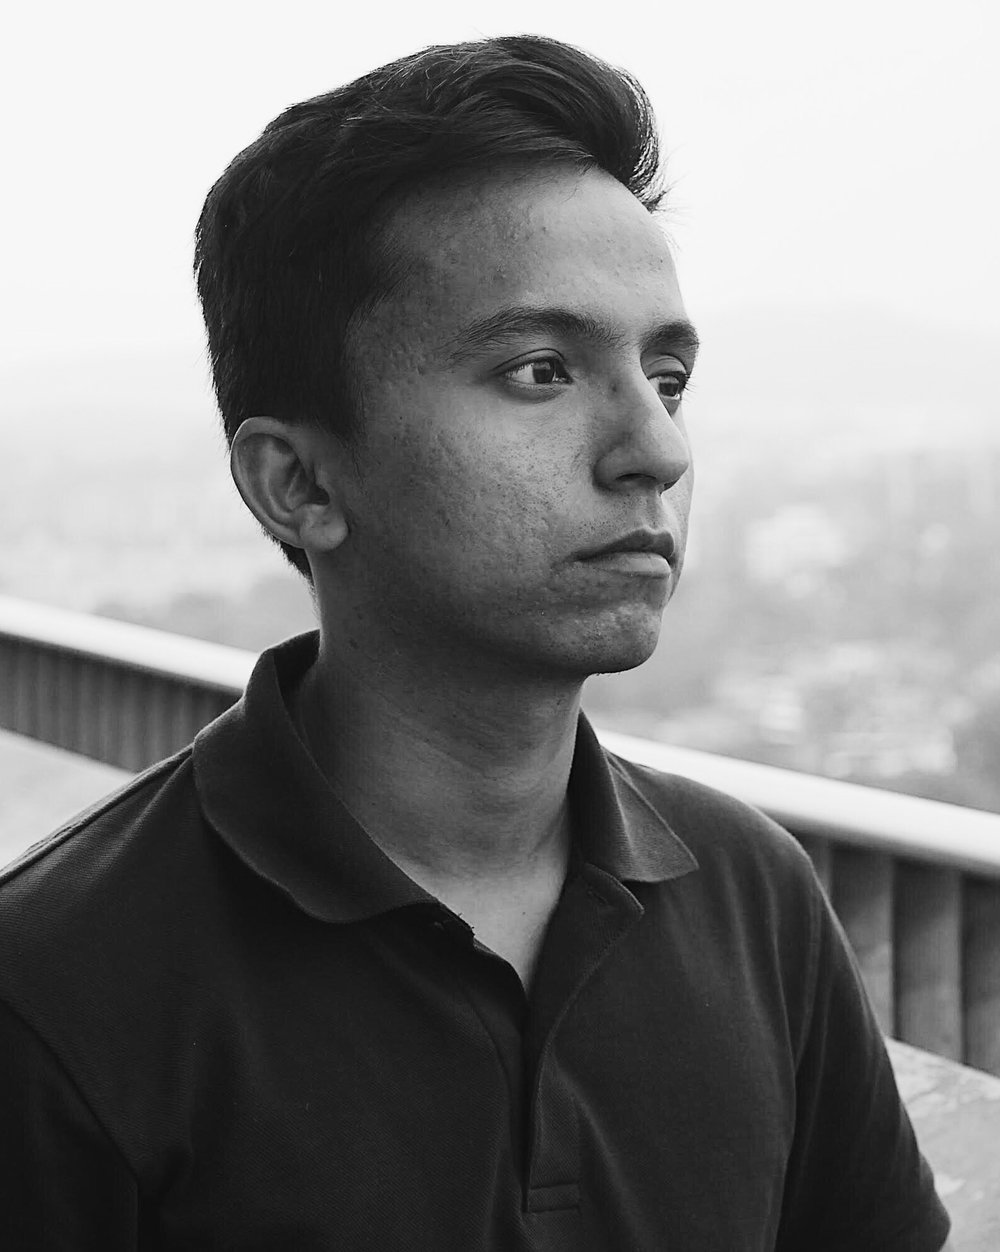 Hamid Roslan  is a poet based in Singapore. His work may be found in  The Volta ,  Asymptote  and the  Quarterly Literary Review Singapore , among others. His debut poetry collection,  parsetreeforestfire , is forthcoming from Ethos Books. Pre-orders will be made available at the event.